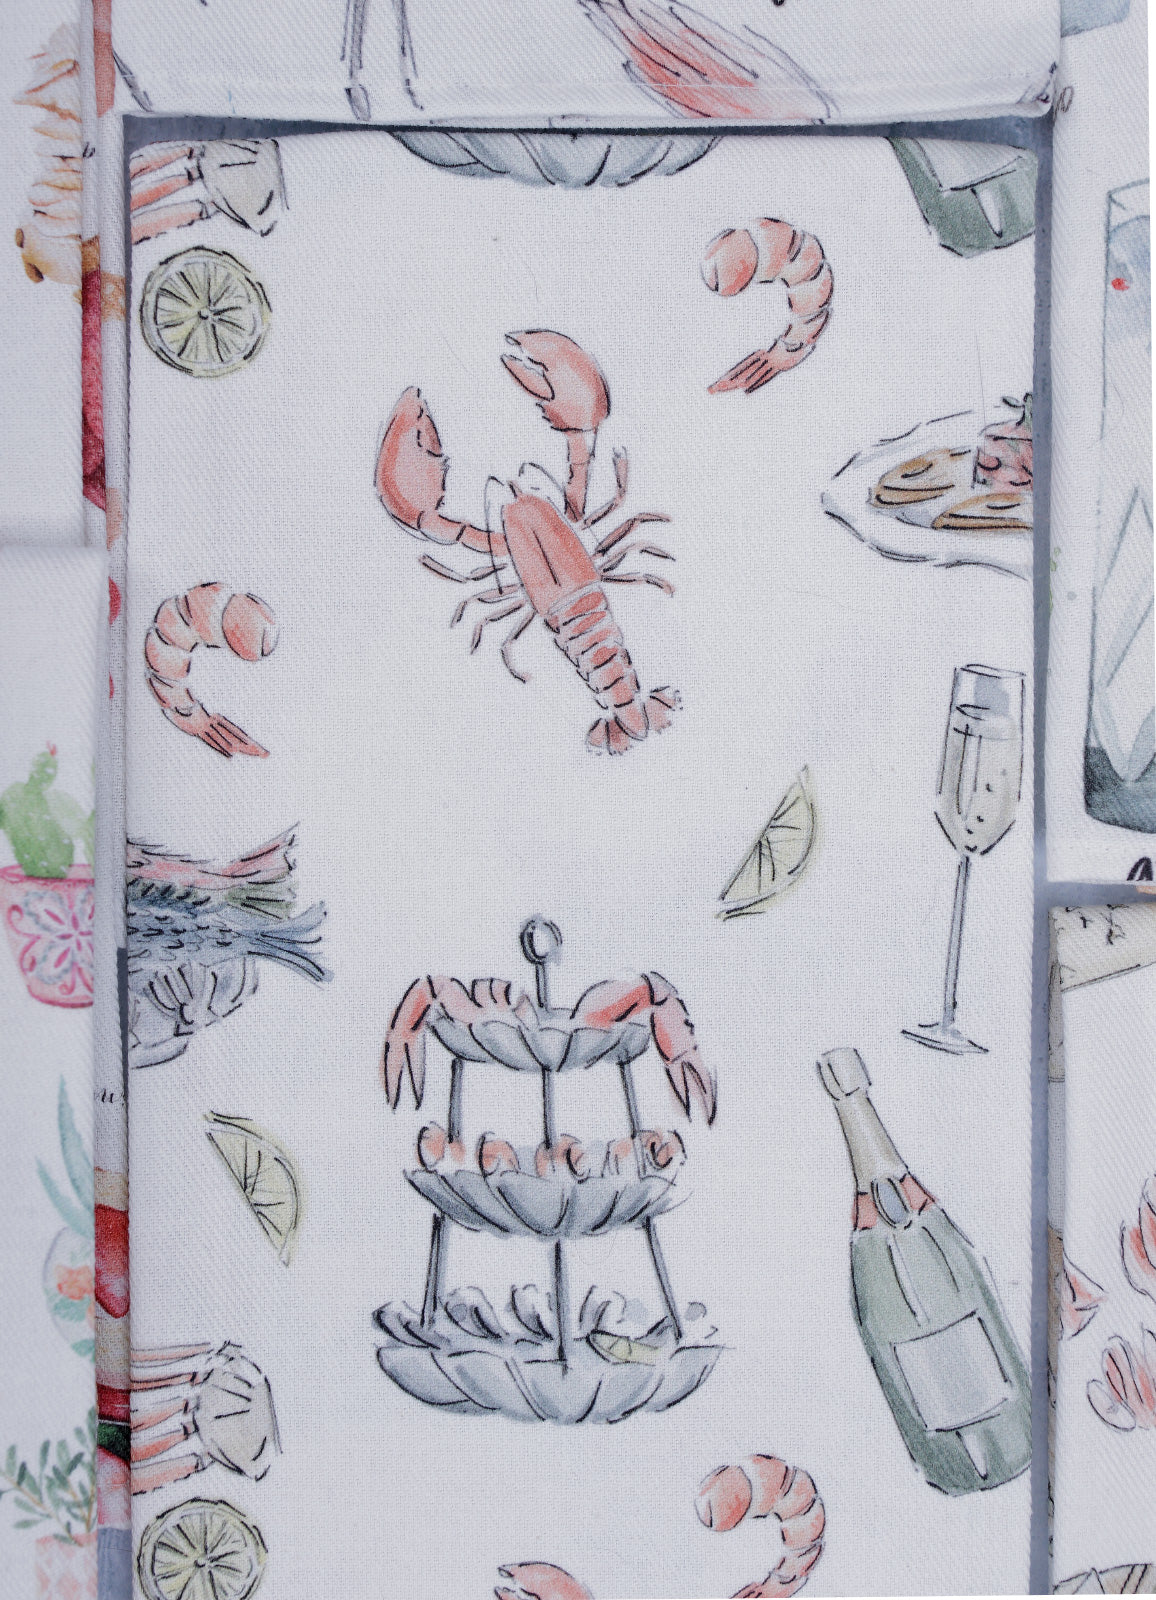 """Fruits de mer et Champagne - Seafood and Champagne"" - Linge de maison / Kitchen Linen"